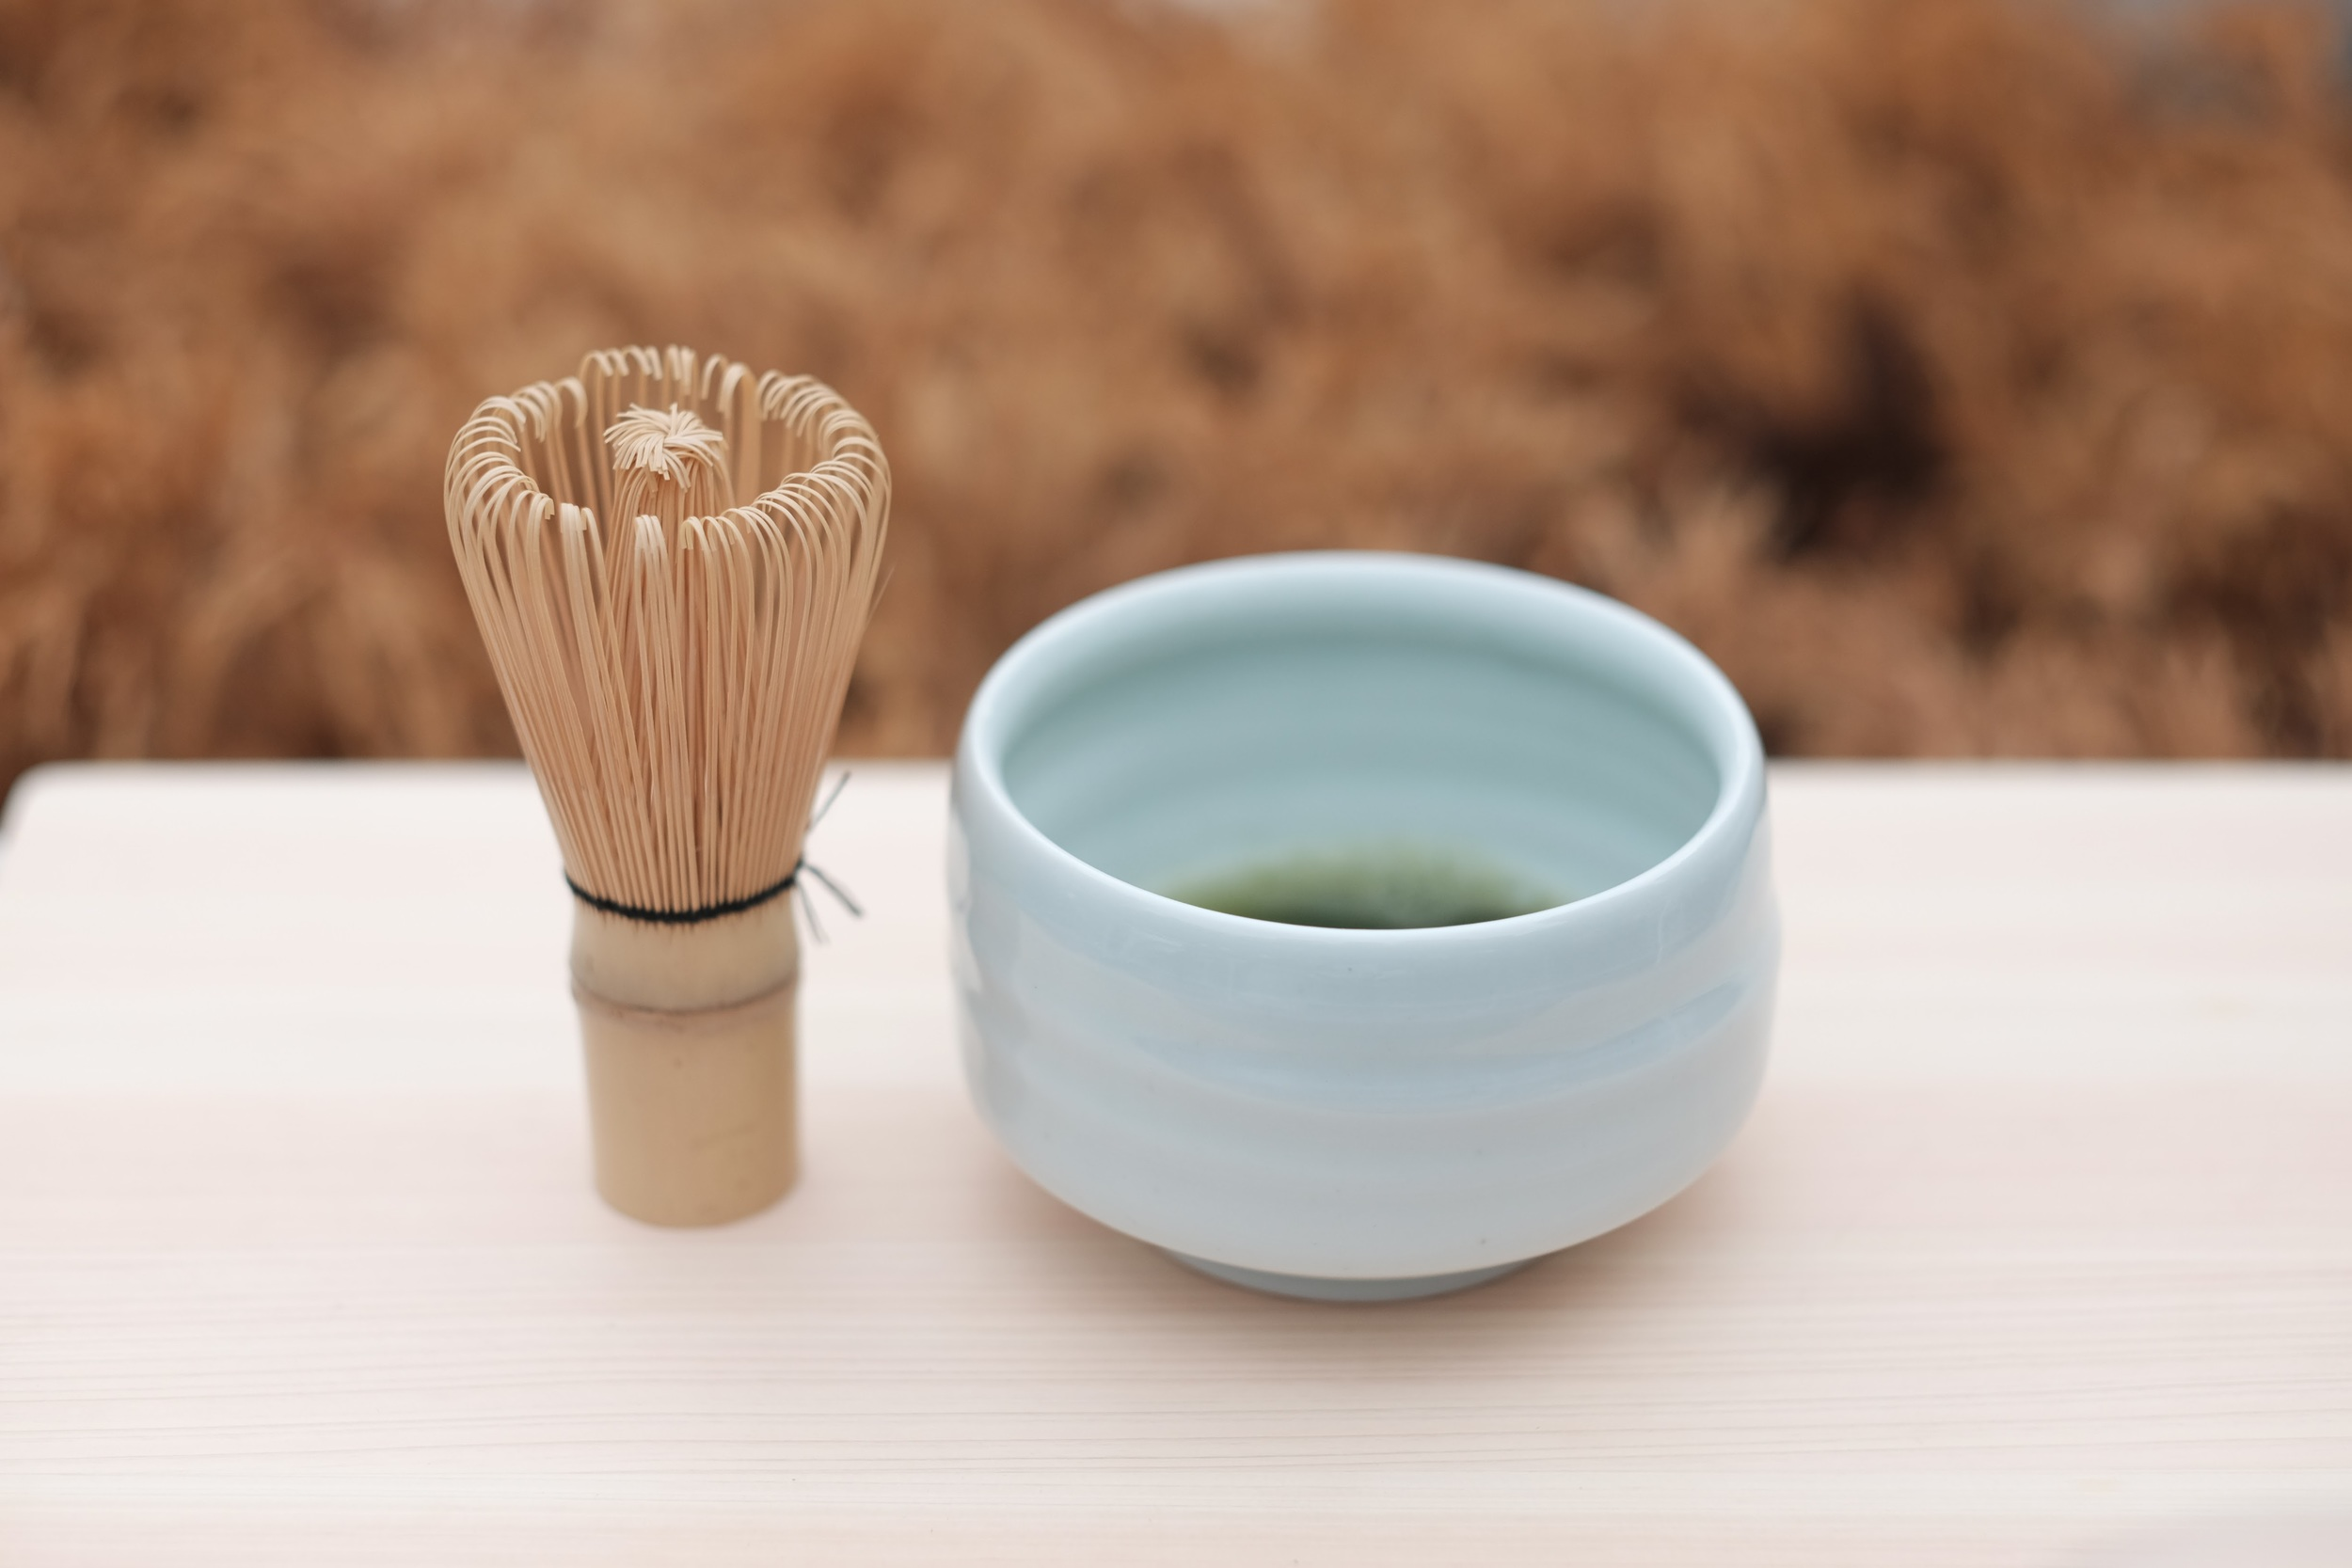 To make matcha you'll need access to hot water, a matcha whisk, matcha bowl and of course matcha!